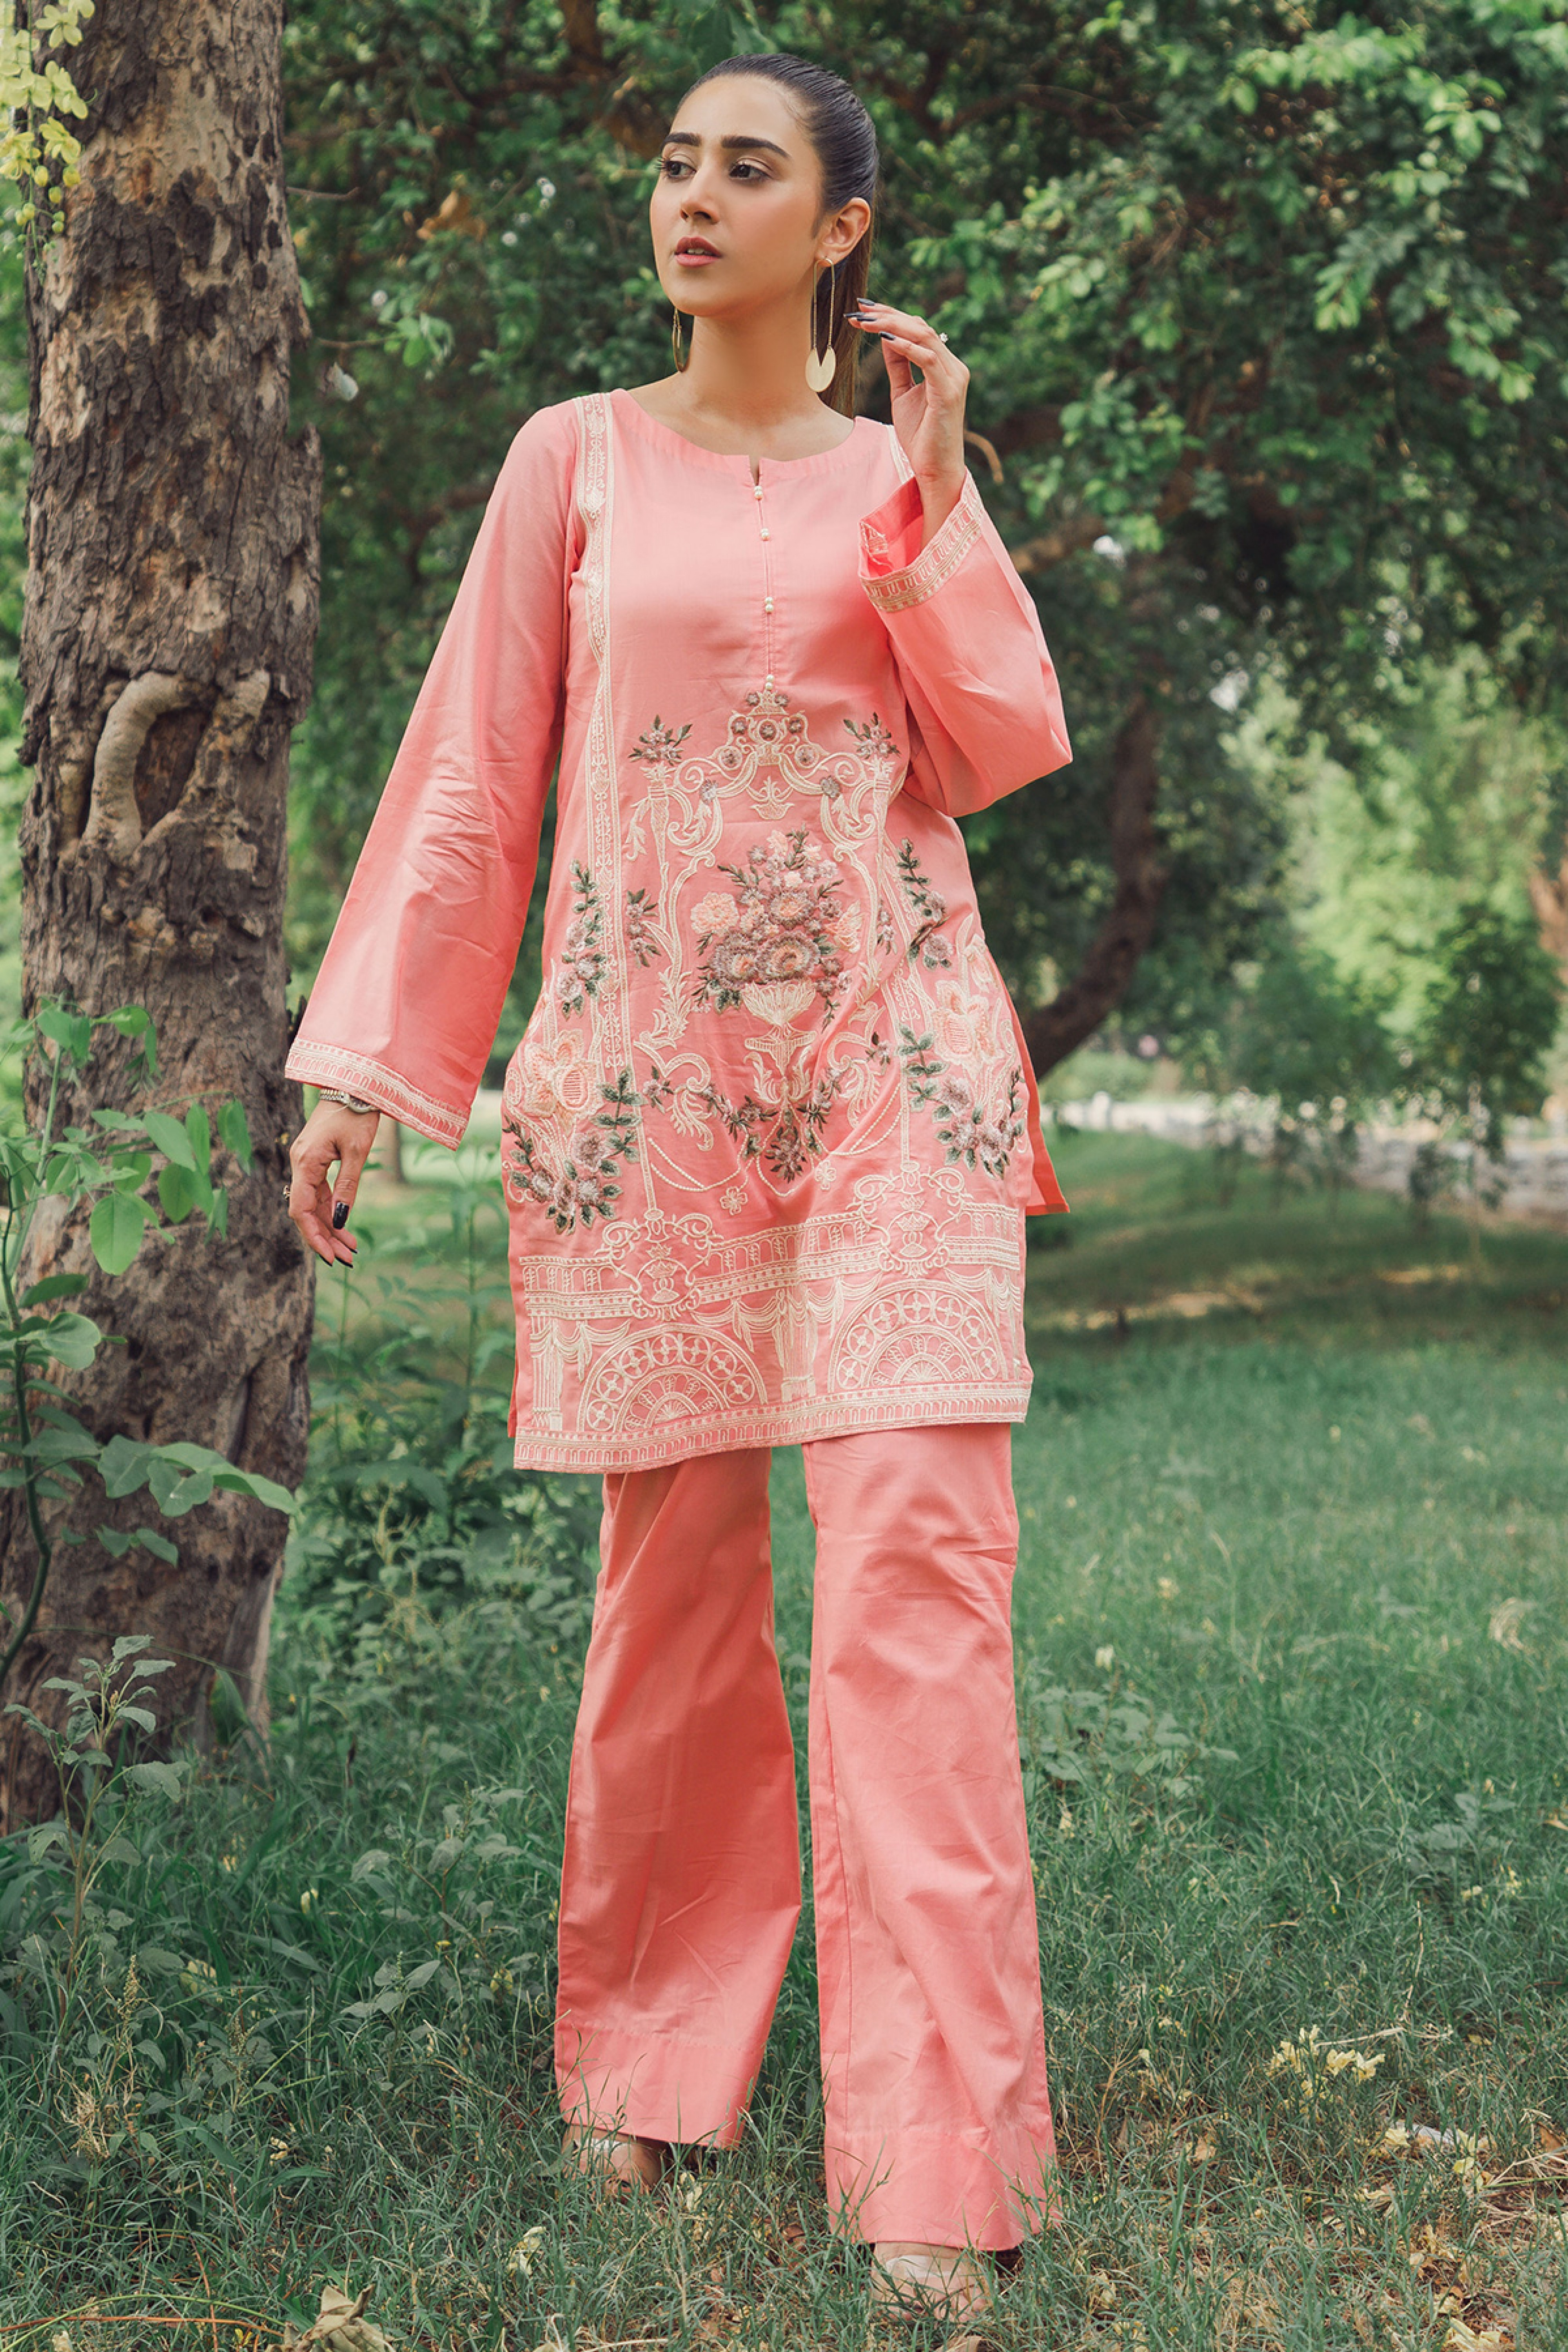 TROPICA (EMBROIDERED SHIRT & TROUSER)